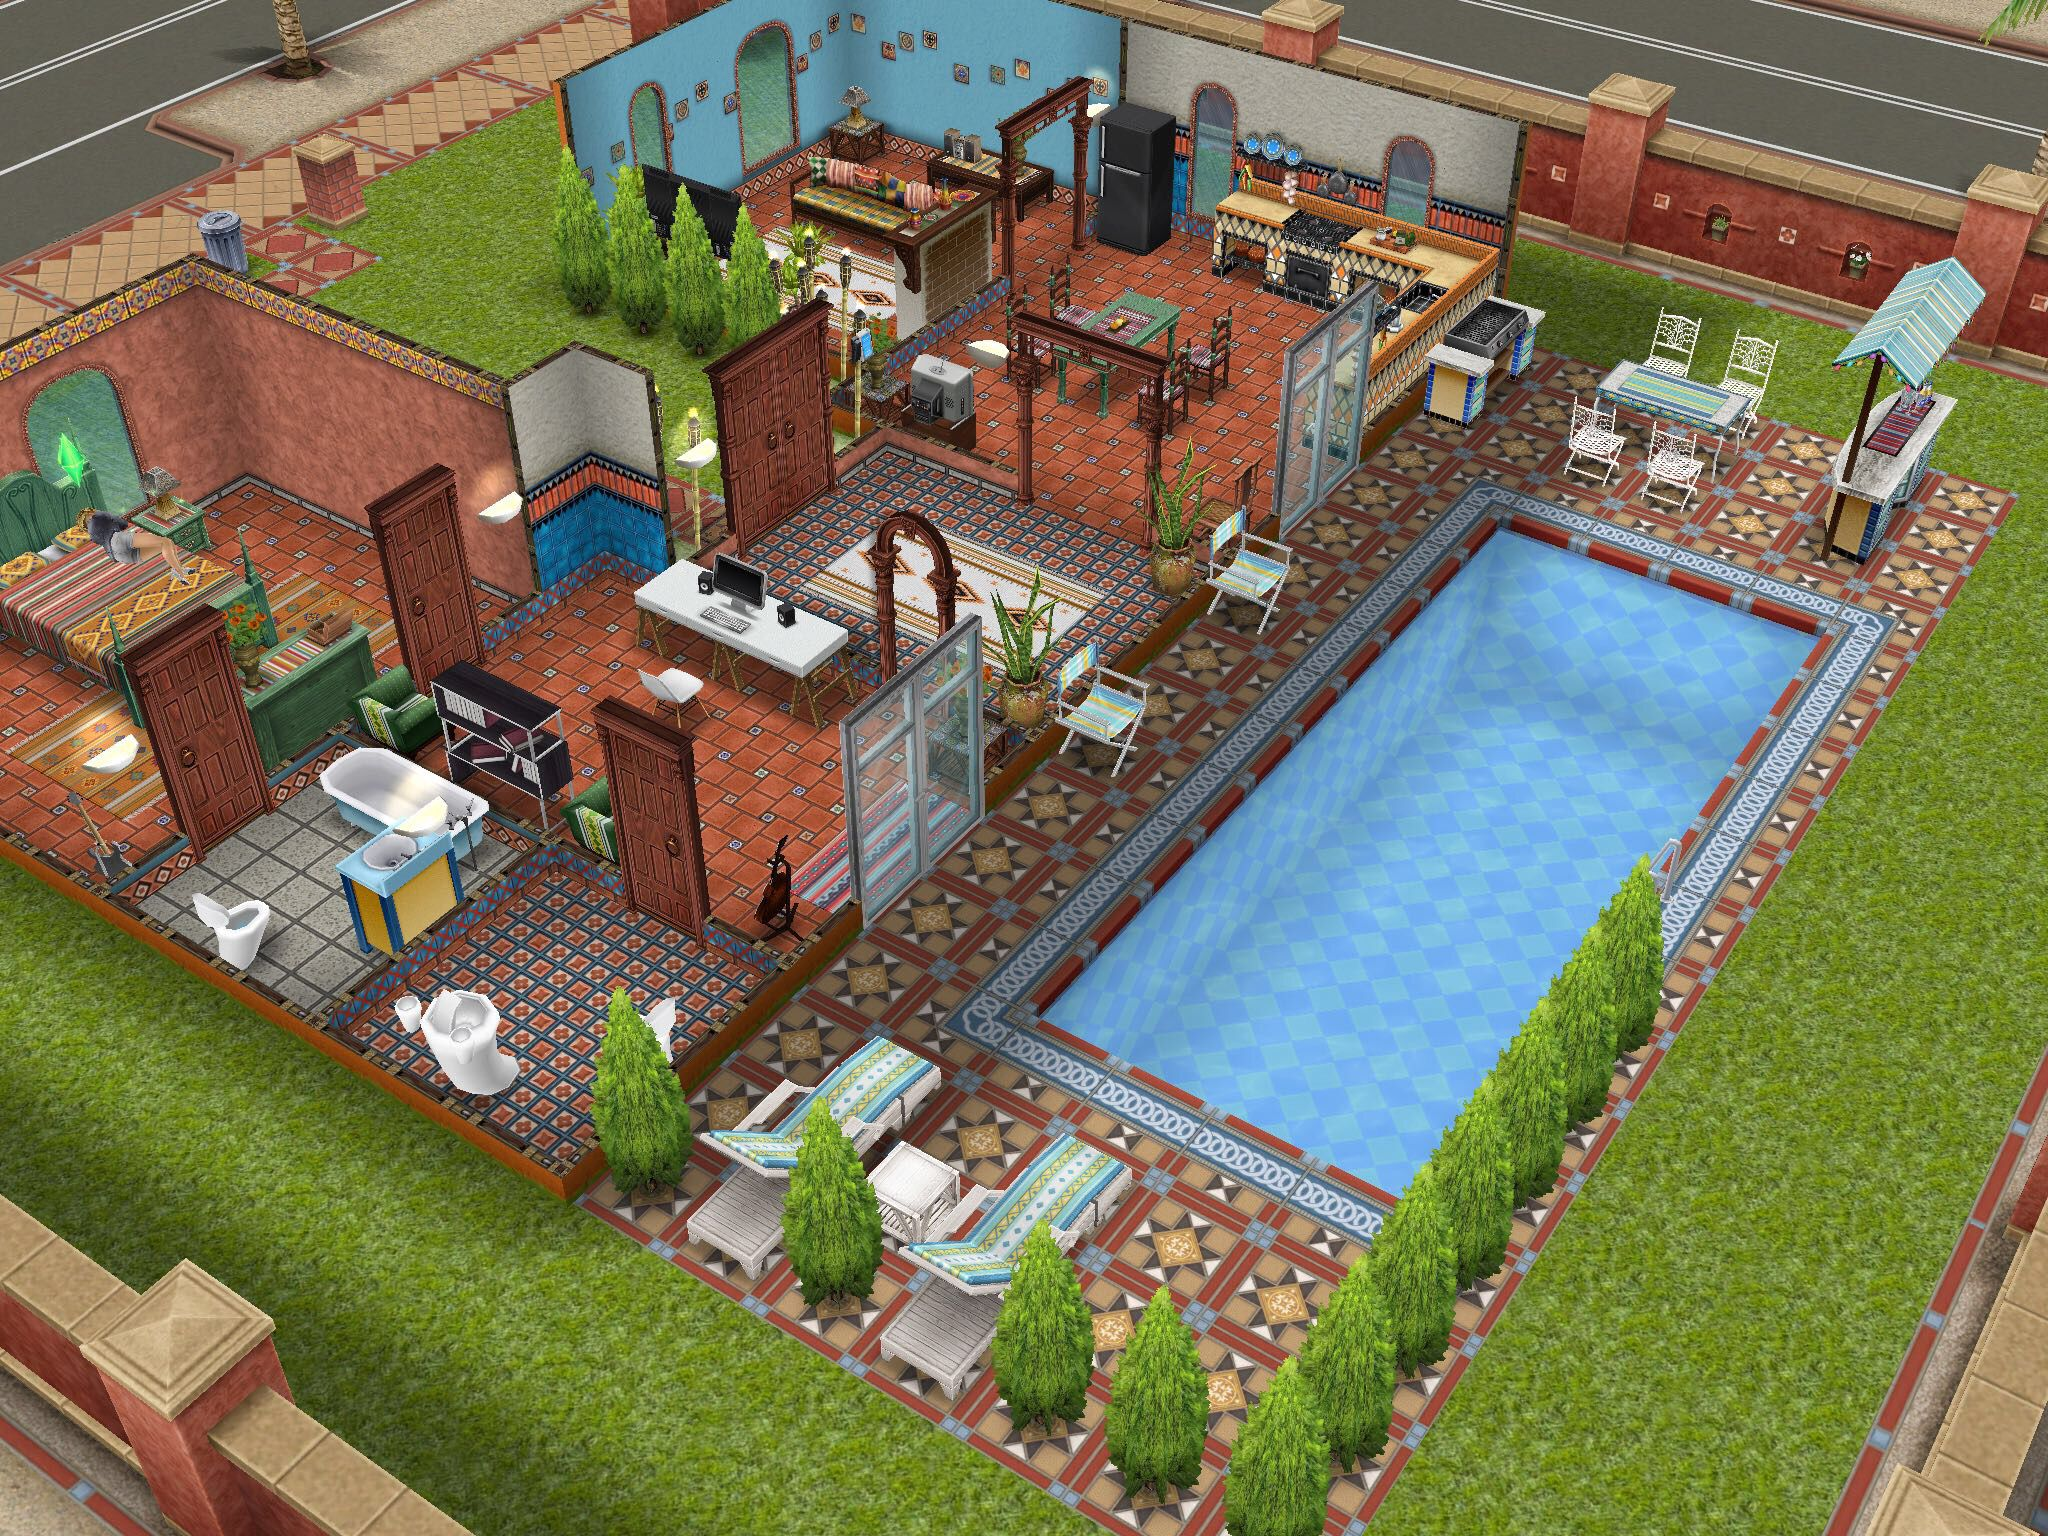 2 2  thesims  freeplay  simsfreeplay. 17 Best images about sims freeplay house ideas on Pinterest   2nd